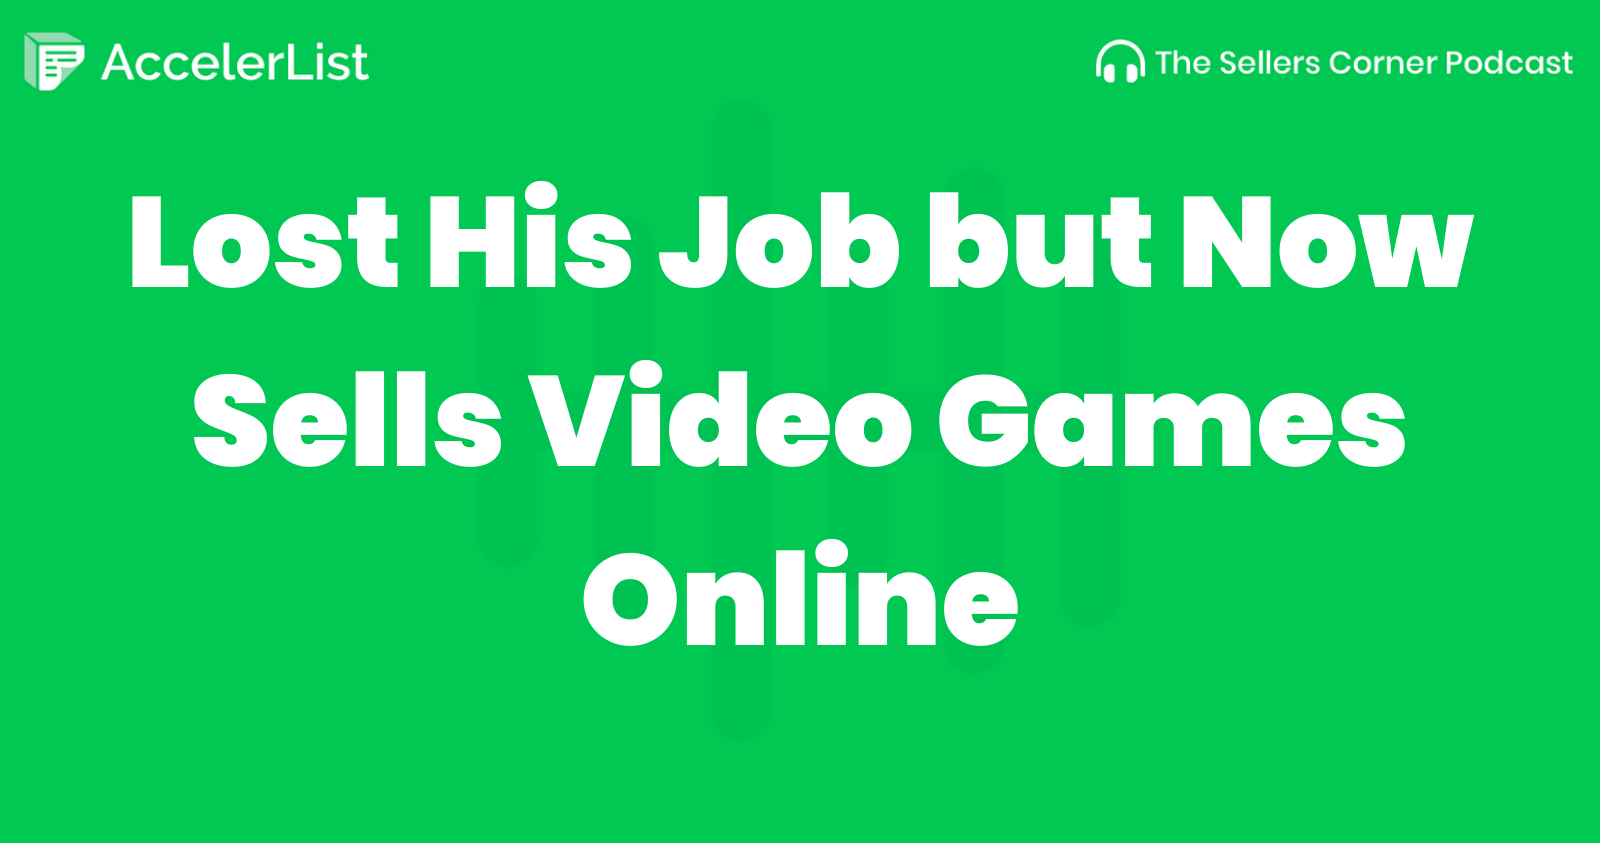 Lost His Job but Now Sells Video Games Online